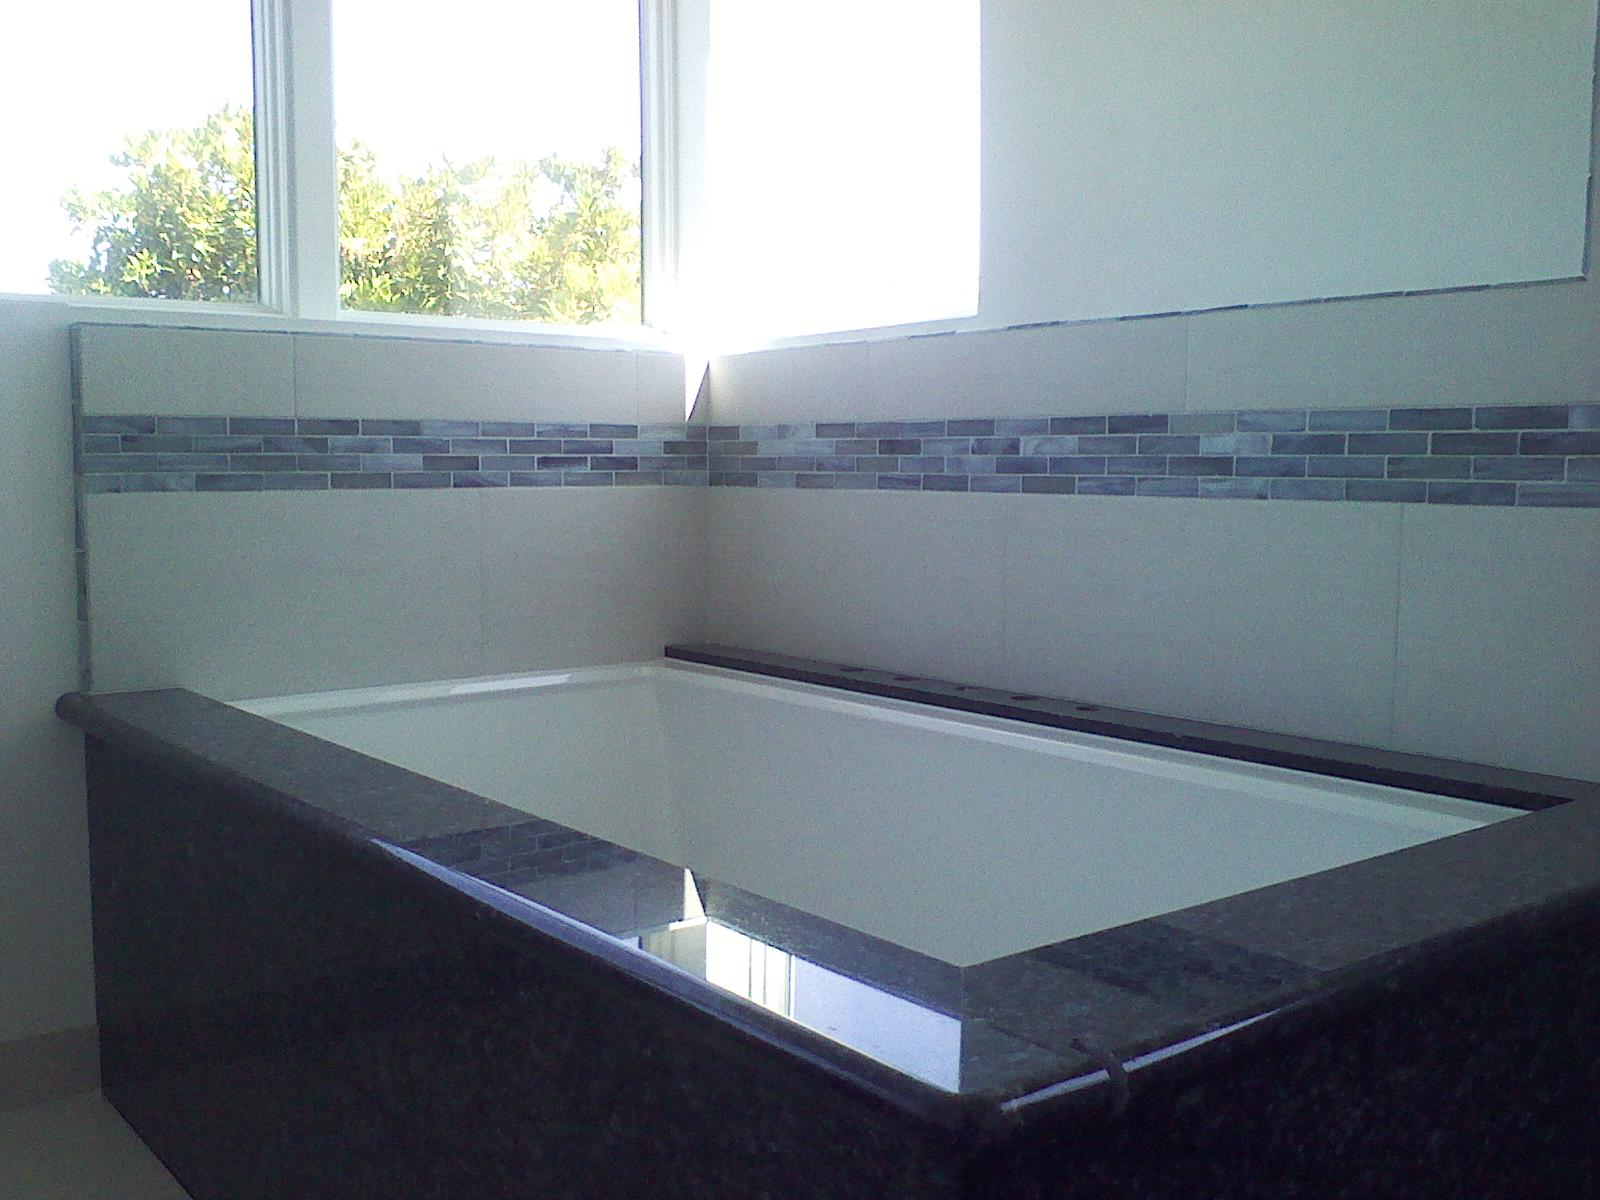 Ken and his crew are awesome! My oddly shaped bathroom was a challenge, but they did a fantastic job. They were great fun to have around too.  -  Kaethe Sullivan